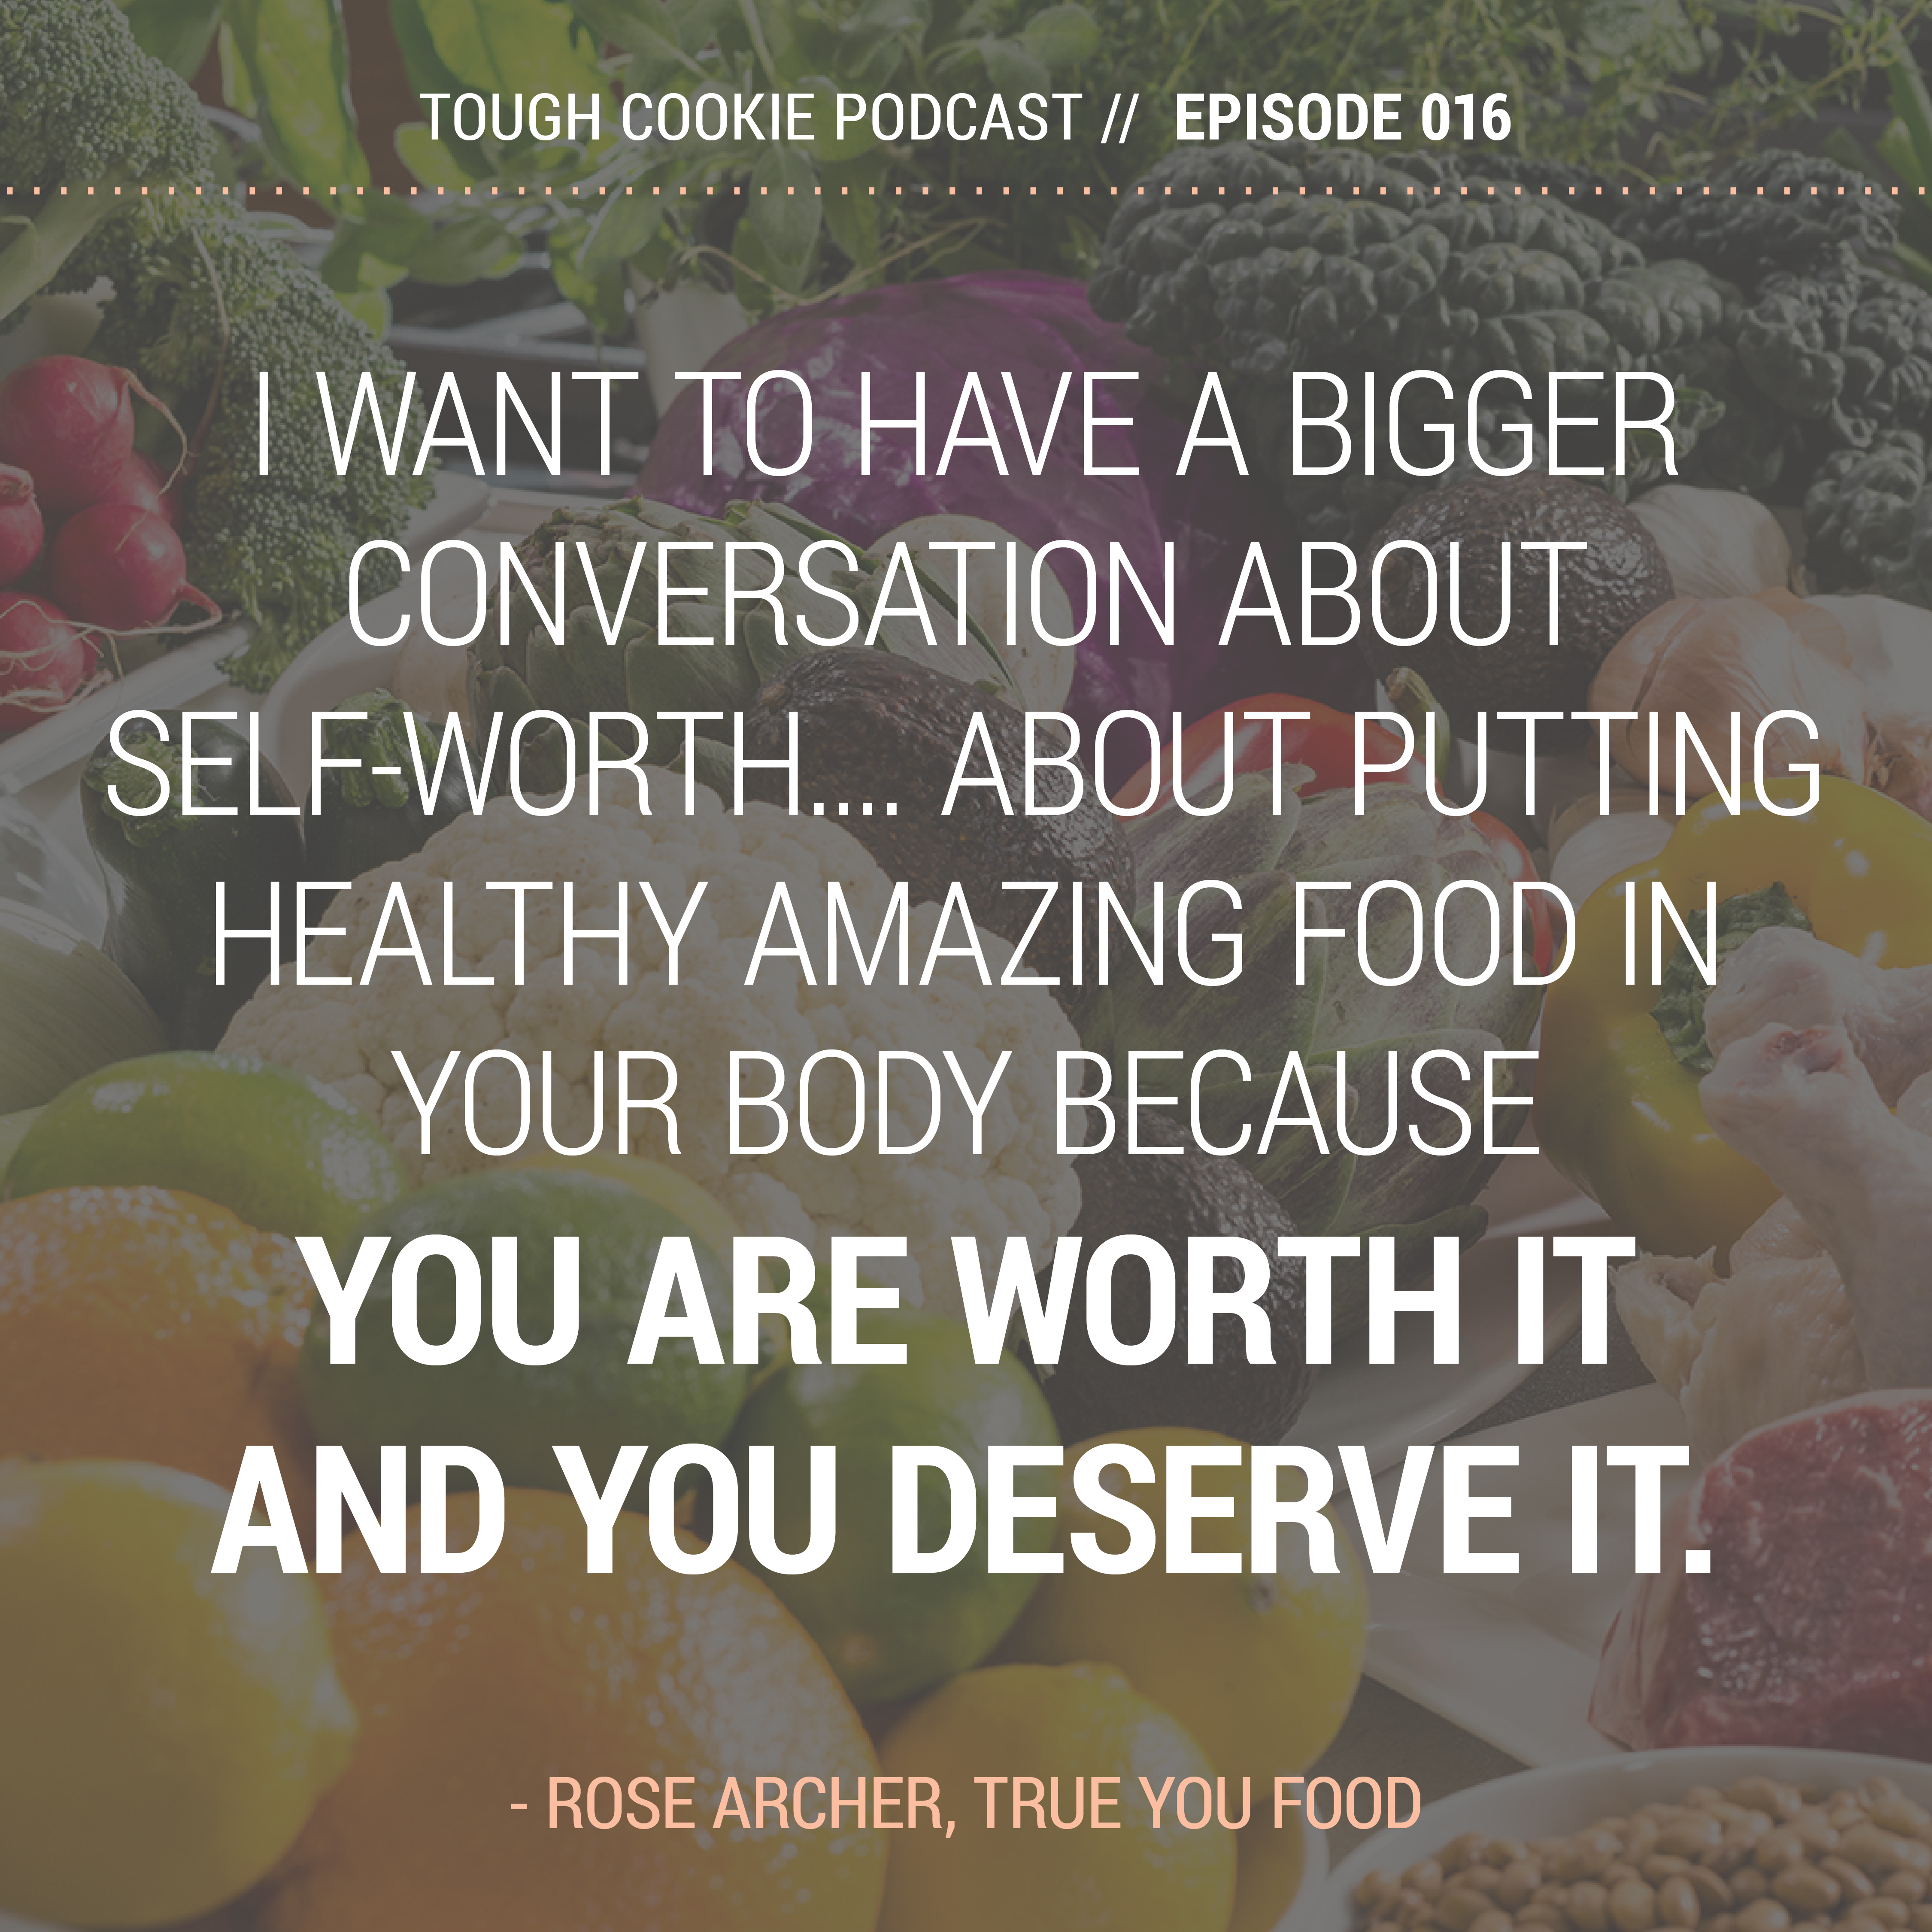 Tough Cookie Podcast - Episode 16 - Nourish the True You with Rose